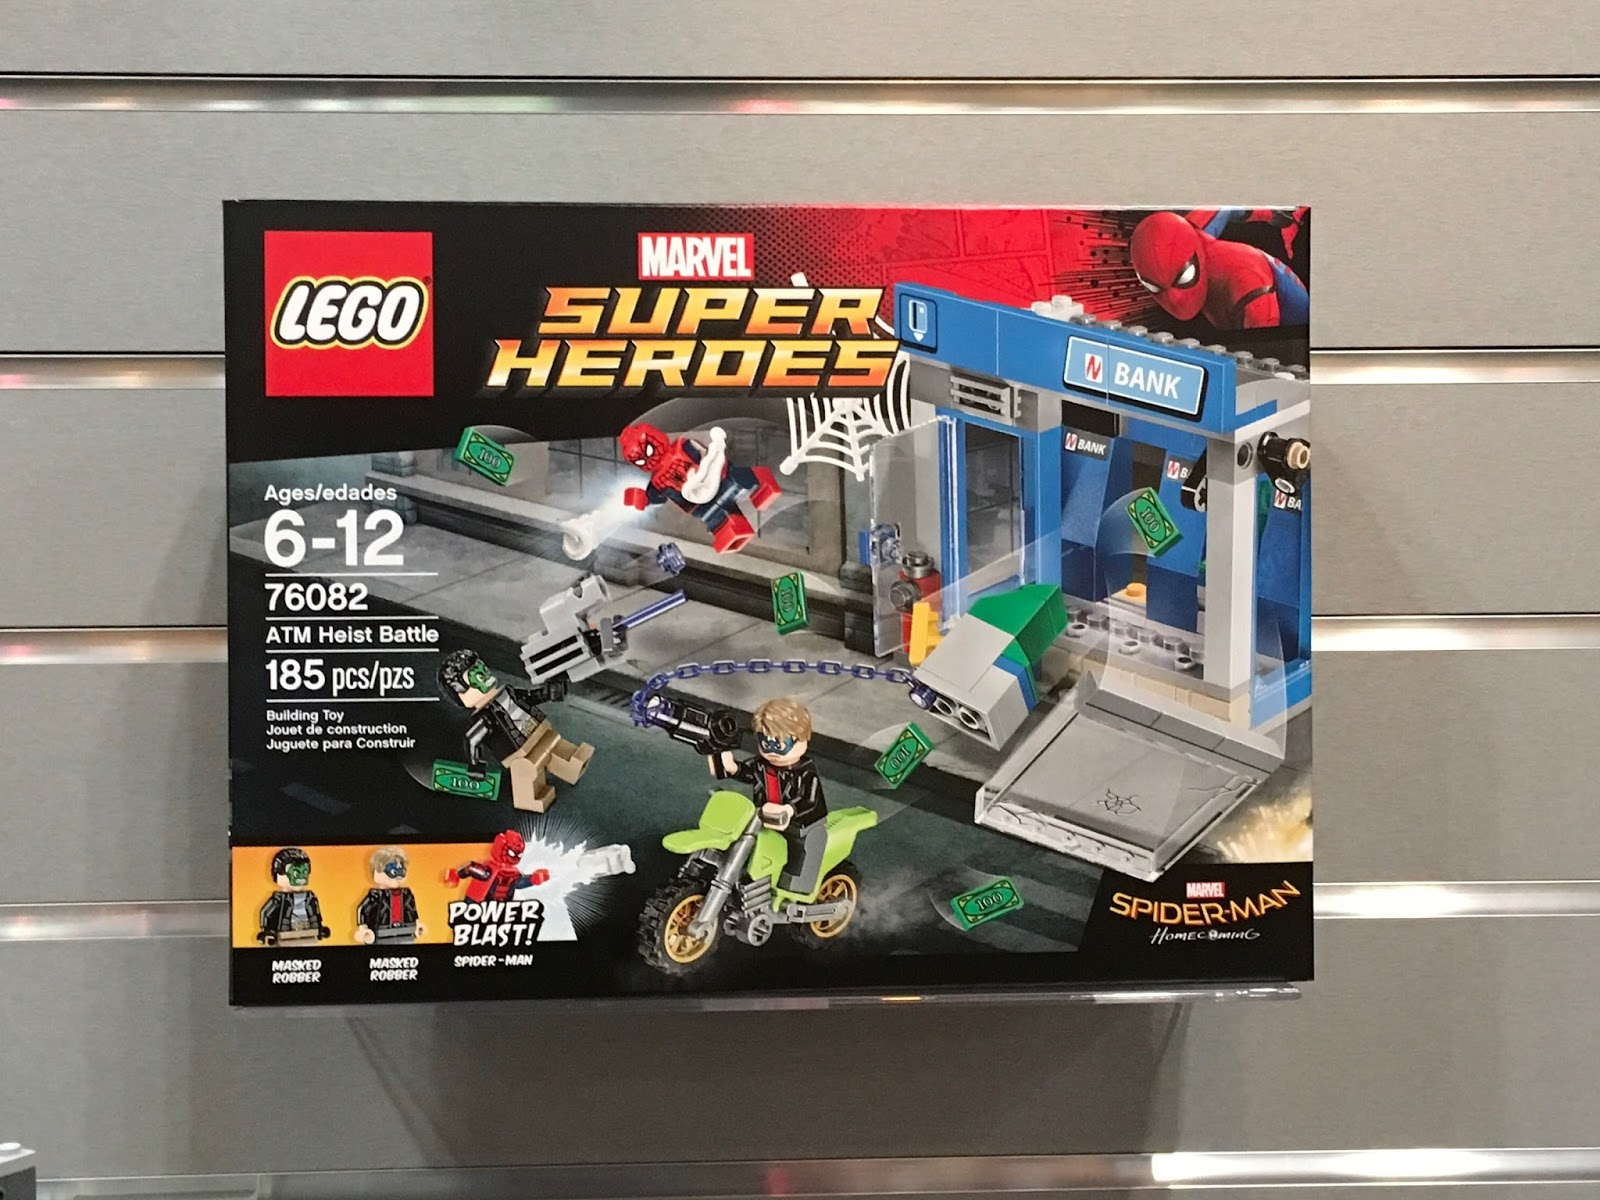 LEGO SPIDER-MAN: HOMECOMING Sets Revealed at Toy Fair 2017